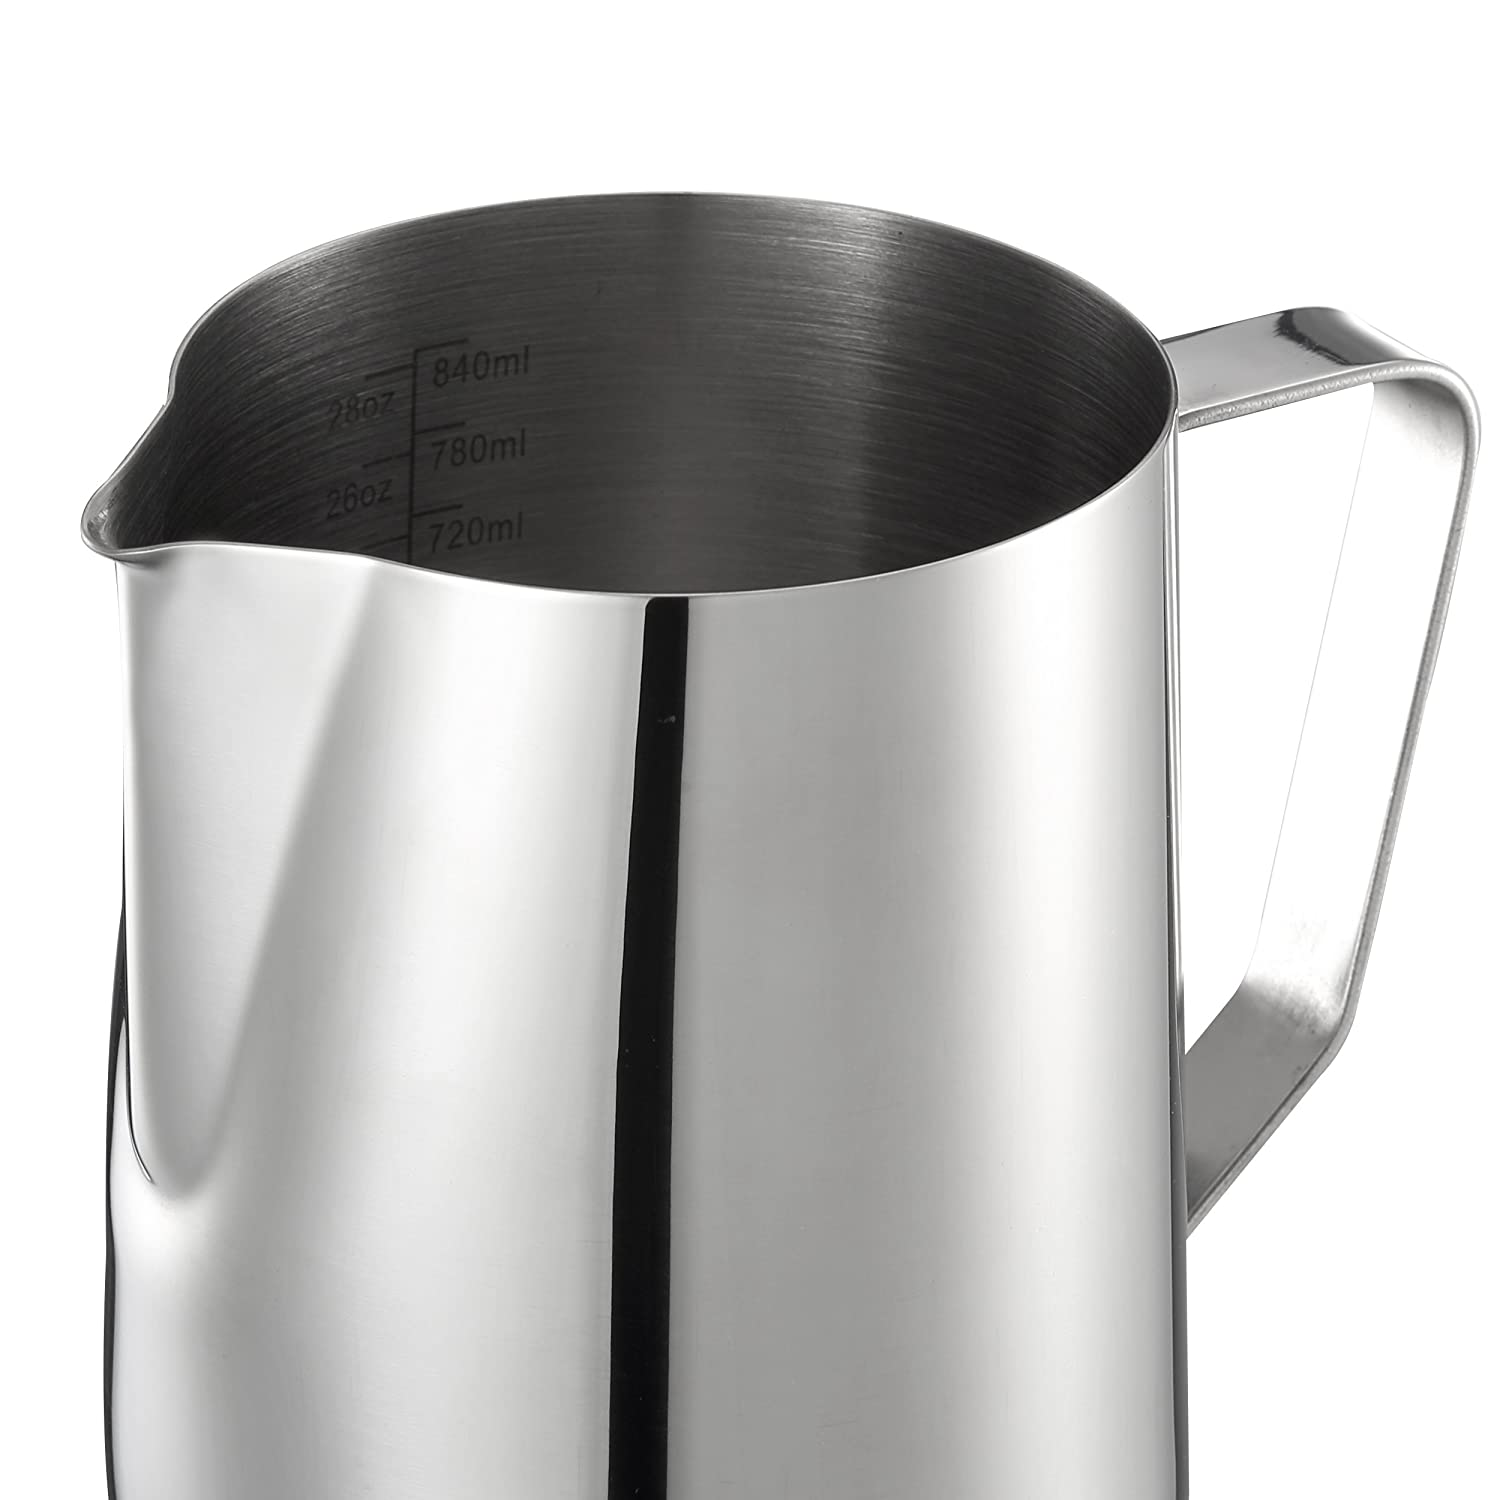 Harima - 900ml Milk Frothing Jug Measuring Pitcher Stainless Steel with Measurement Markings